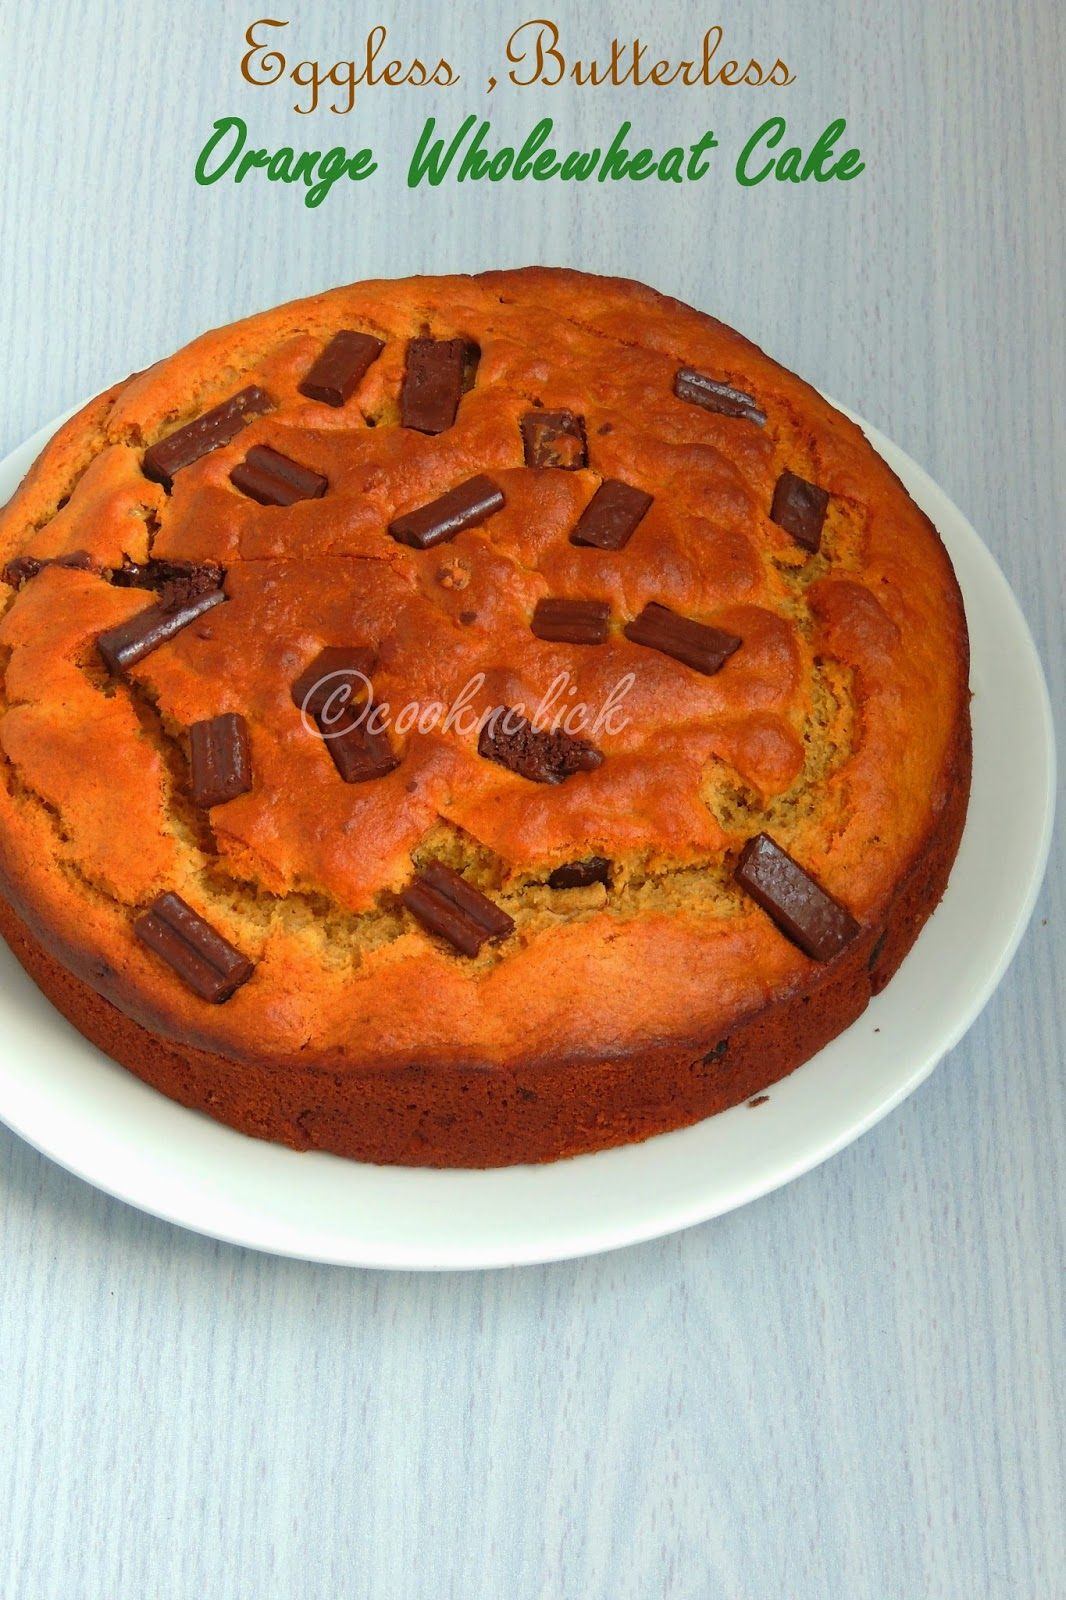 Eggless butterless orange chocolate wholewheat cake